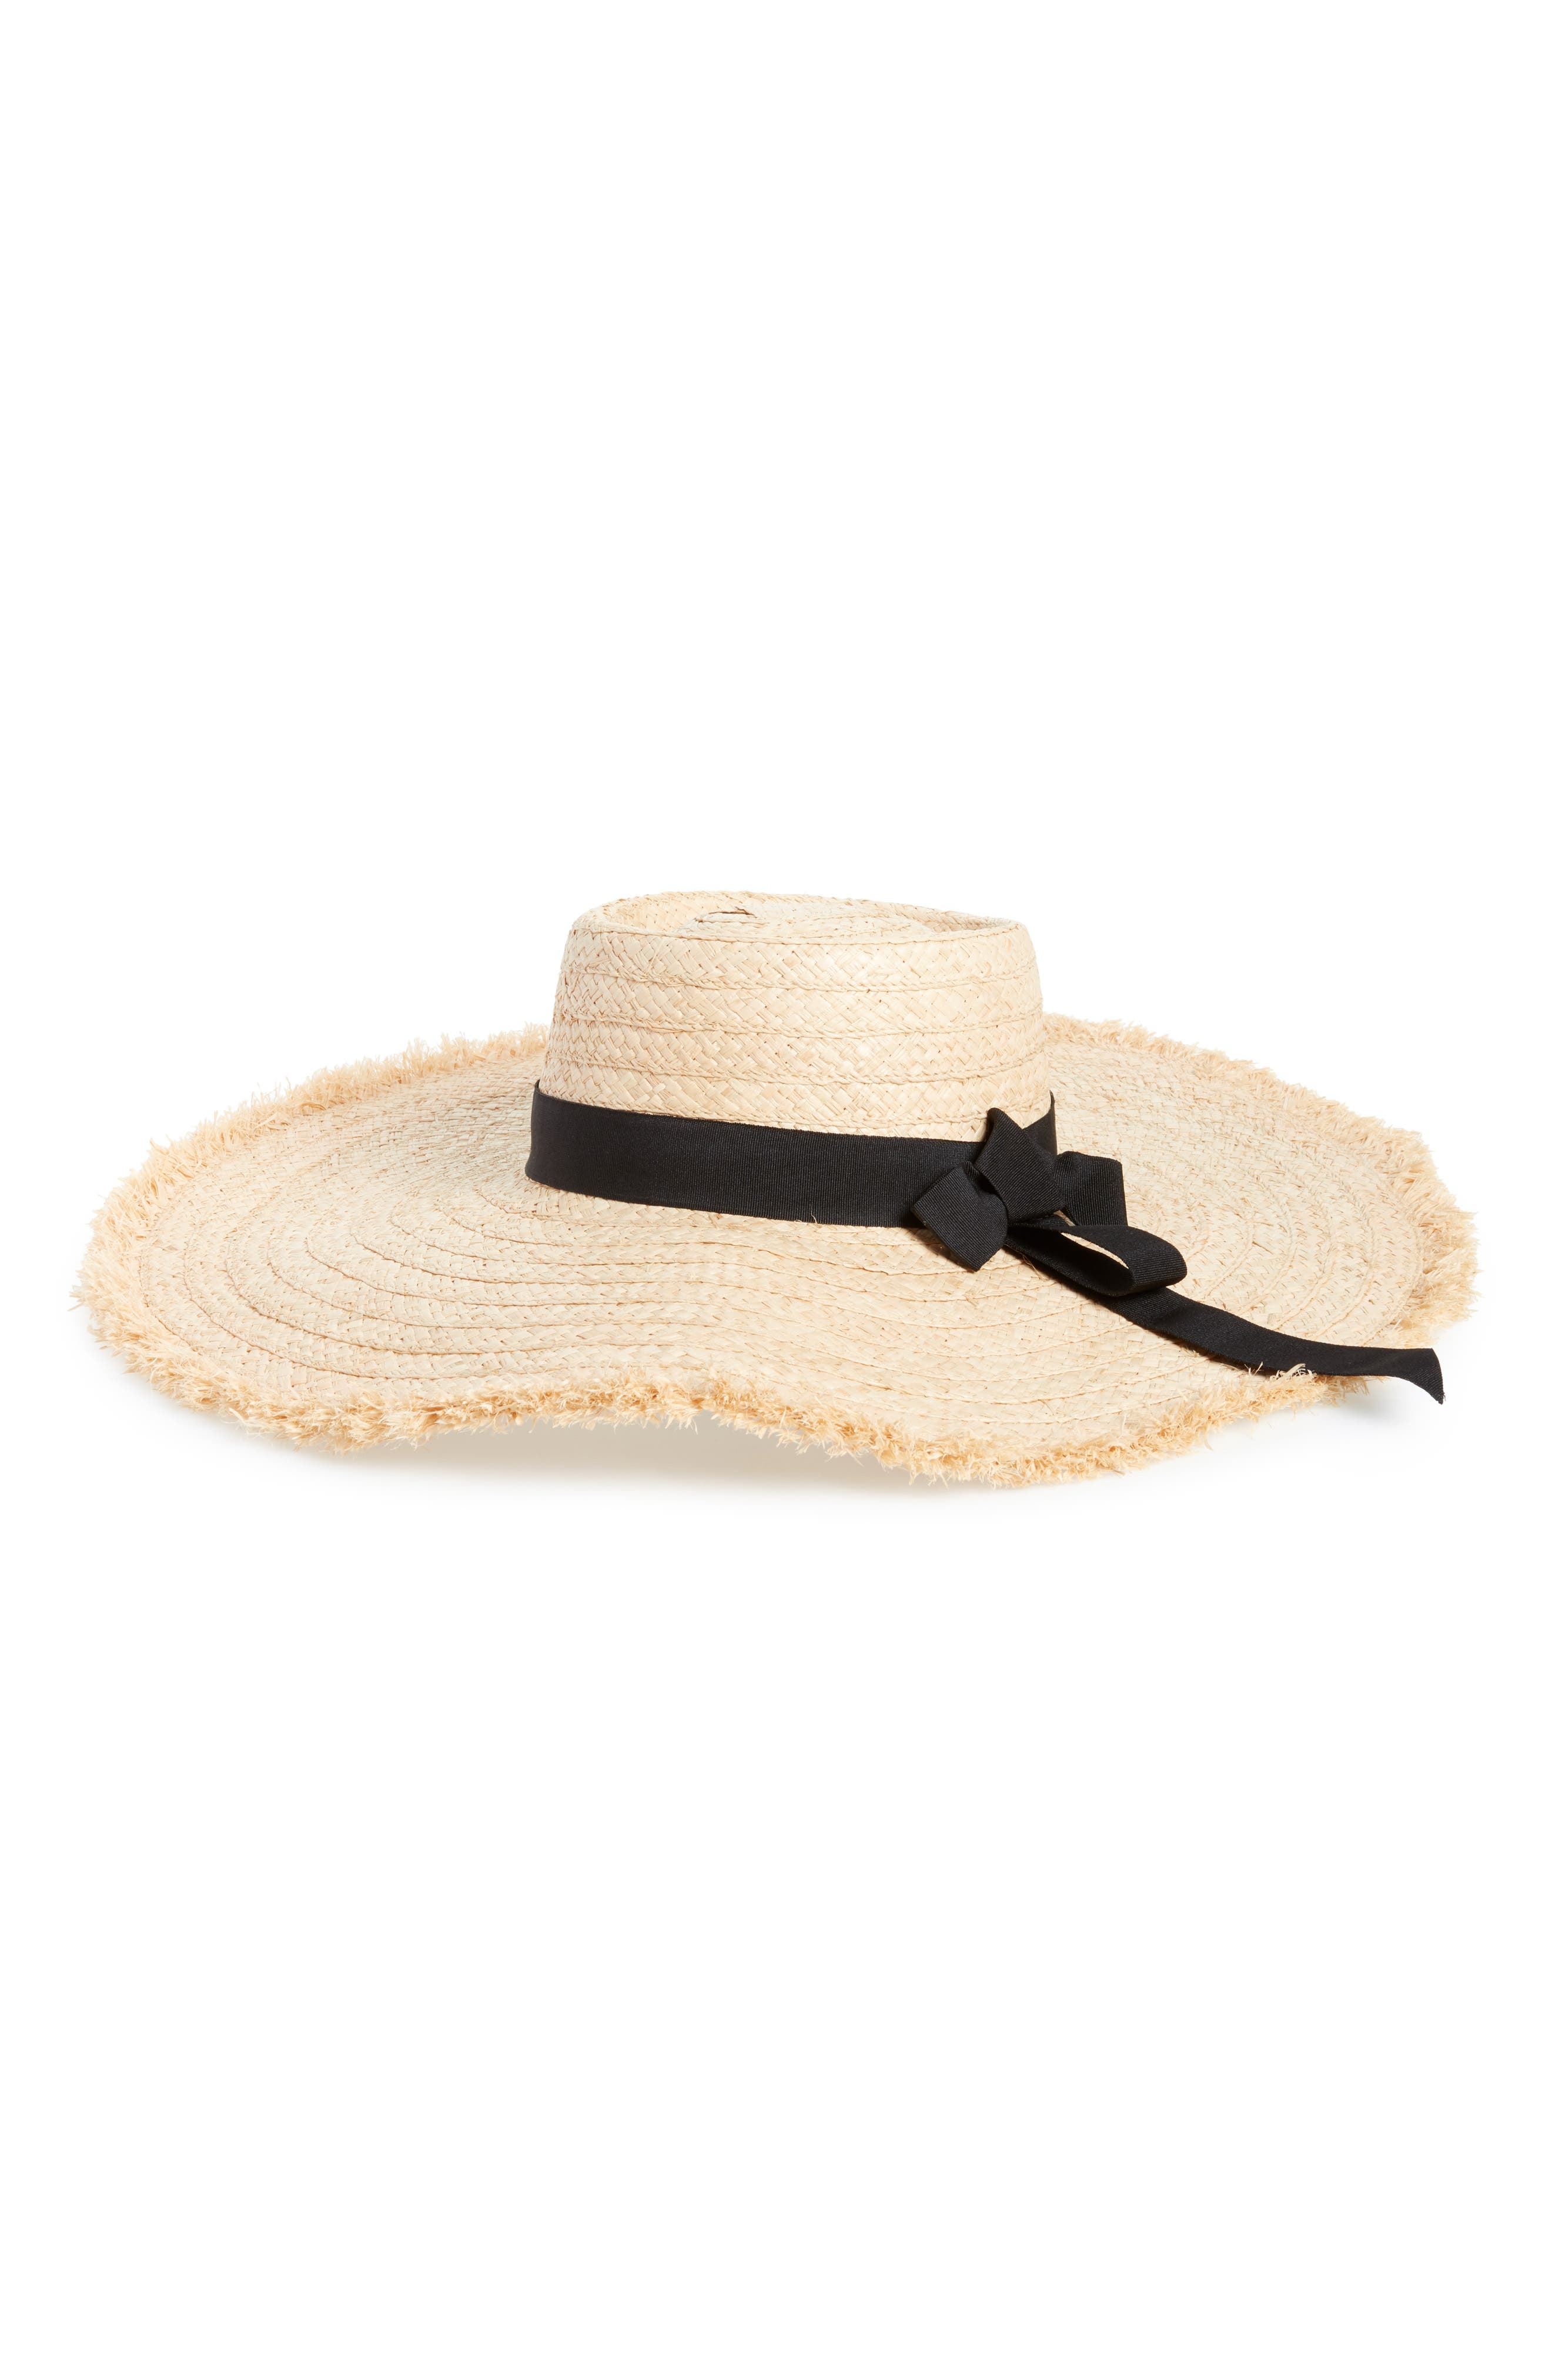 Wide Brim Sun Hat,                             Main thumbnail 1, color,                             IVORY